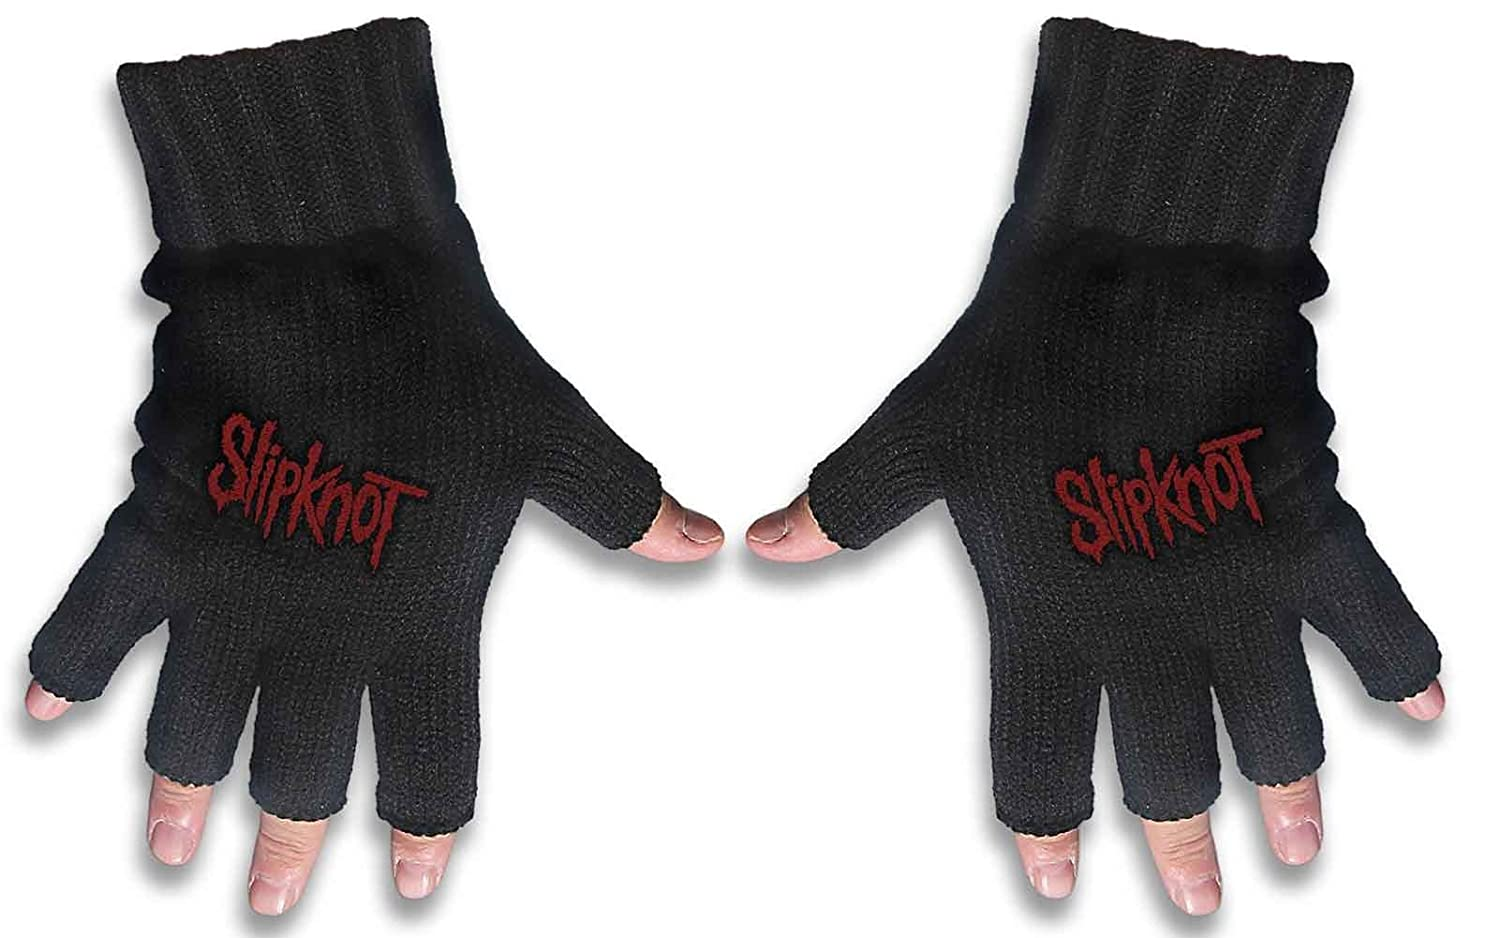 Slipknot Gloves Band Logo Iowa new Official Fingerless Black